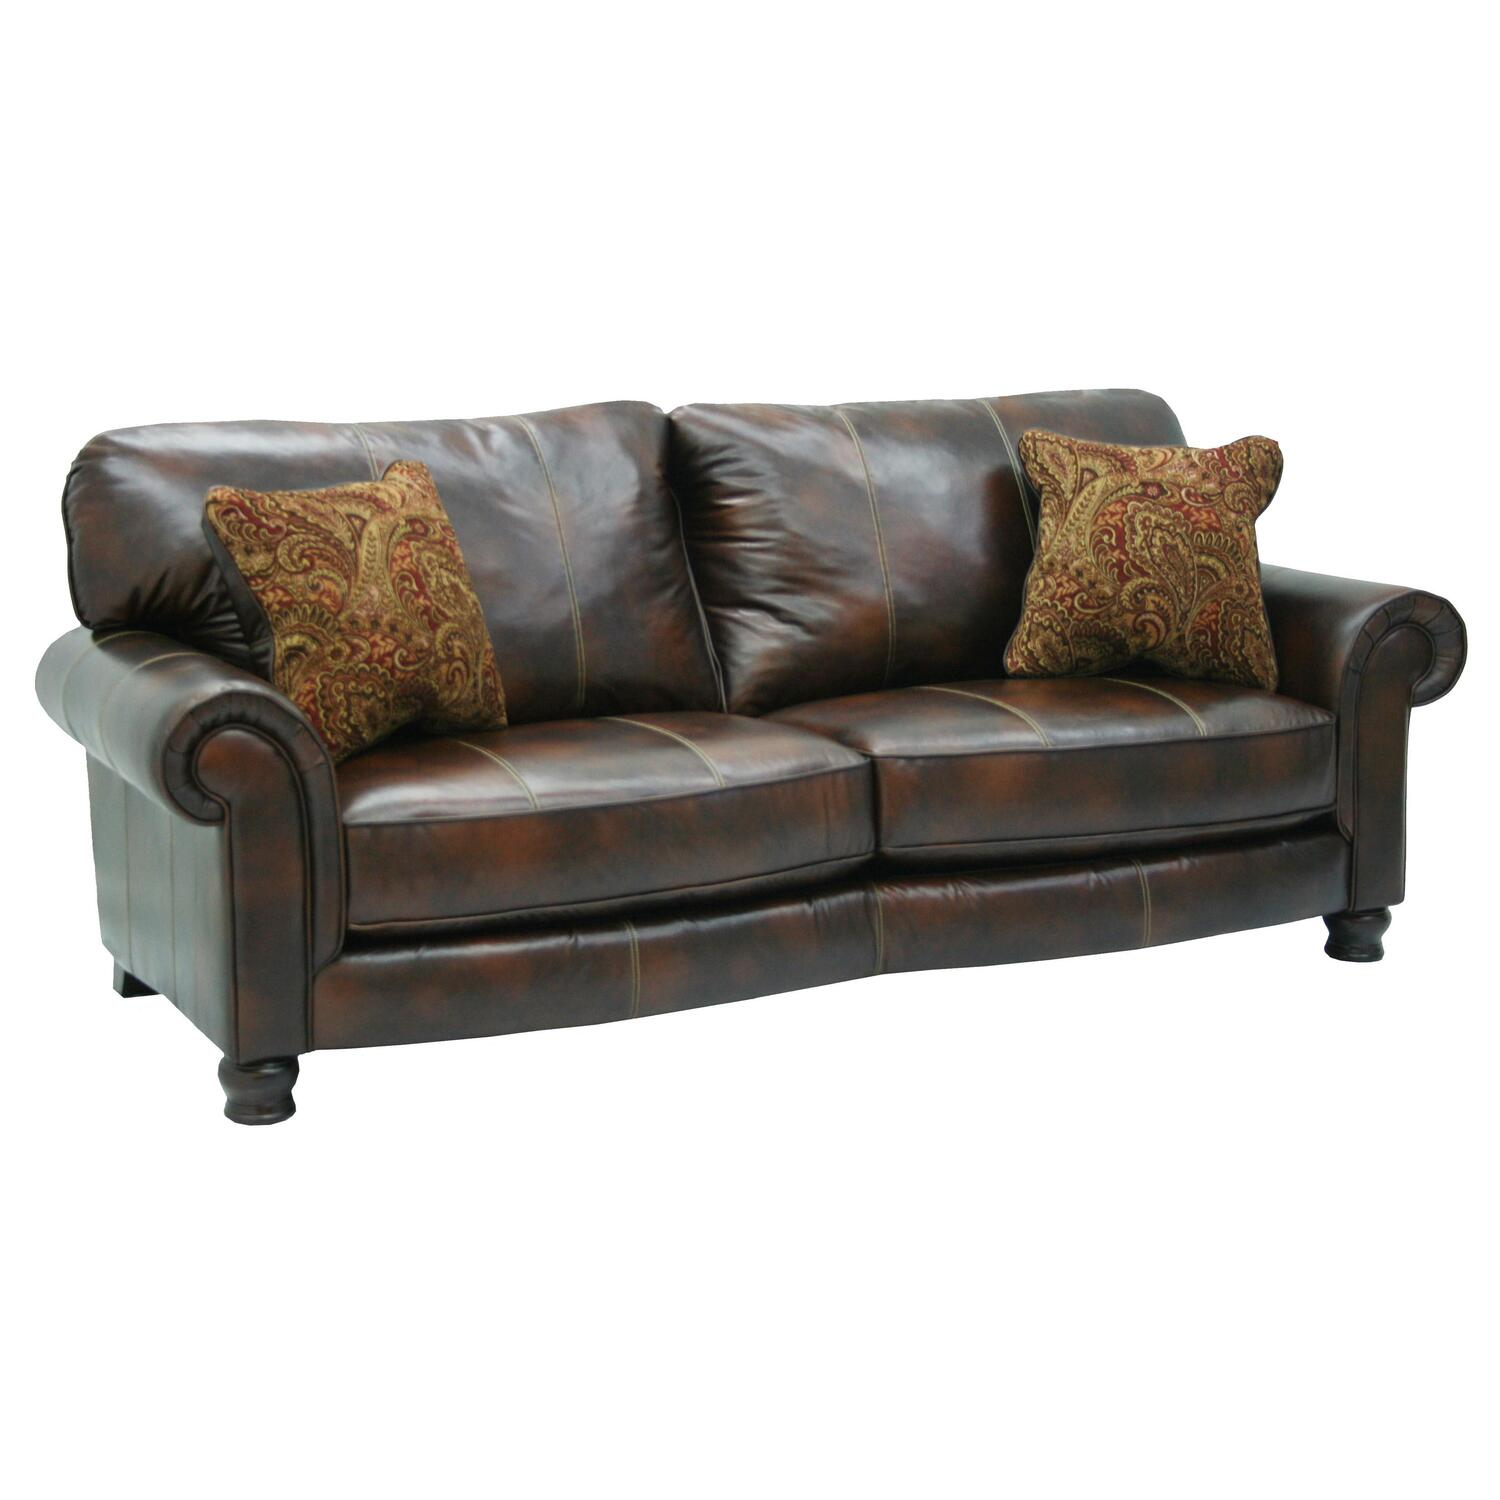 jackson furniture sectional sofas clic clac sofa bed with arms oxford by oj commerce 4372 03 2468